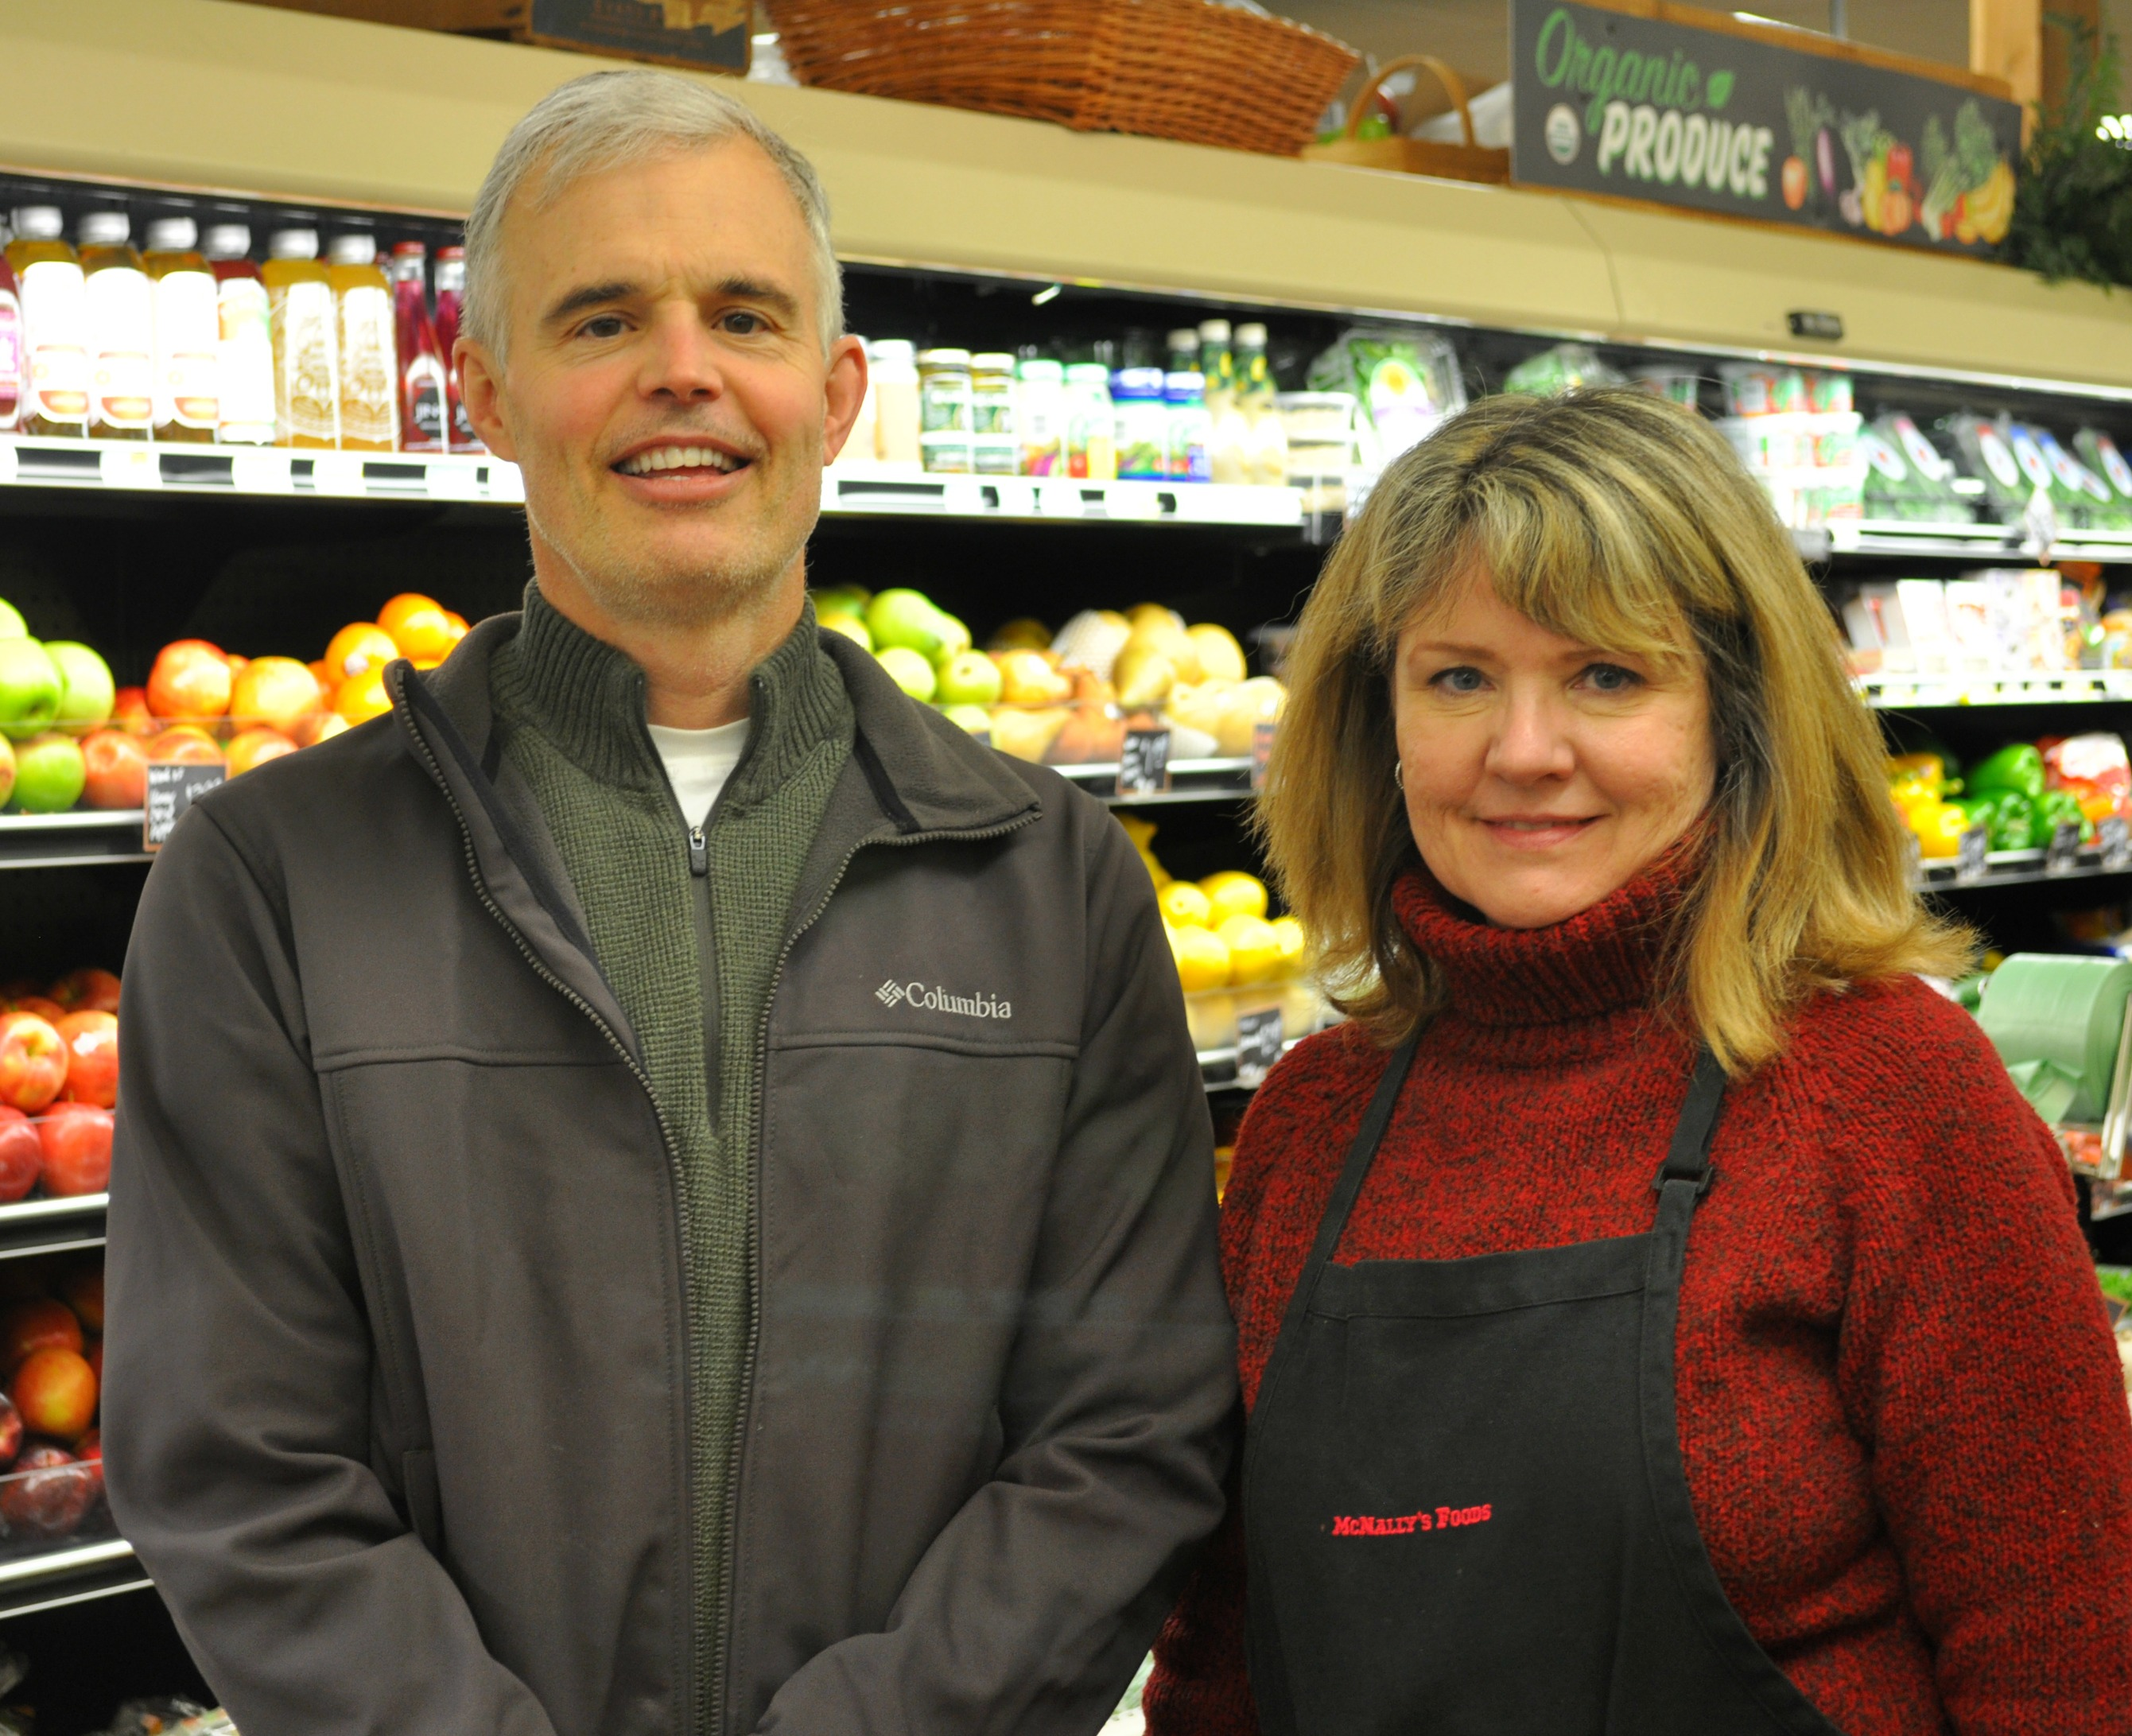 Randy and Julie Smith have owned and operated McNally's since 1988.  Photo by Sarah Breemer Pfennigs